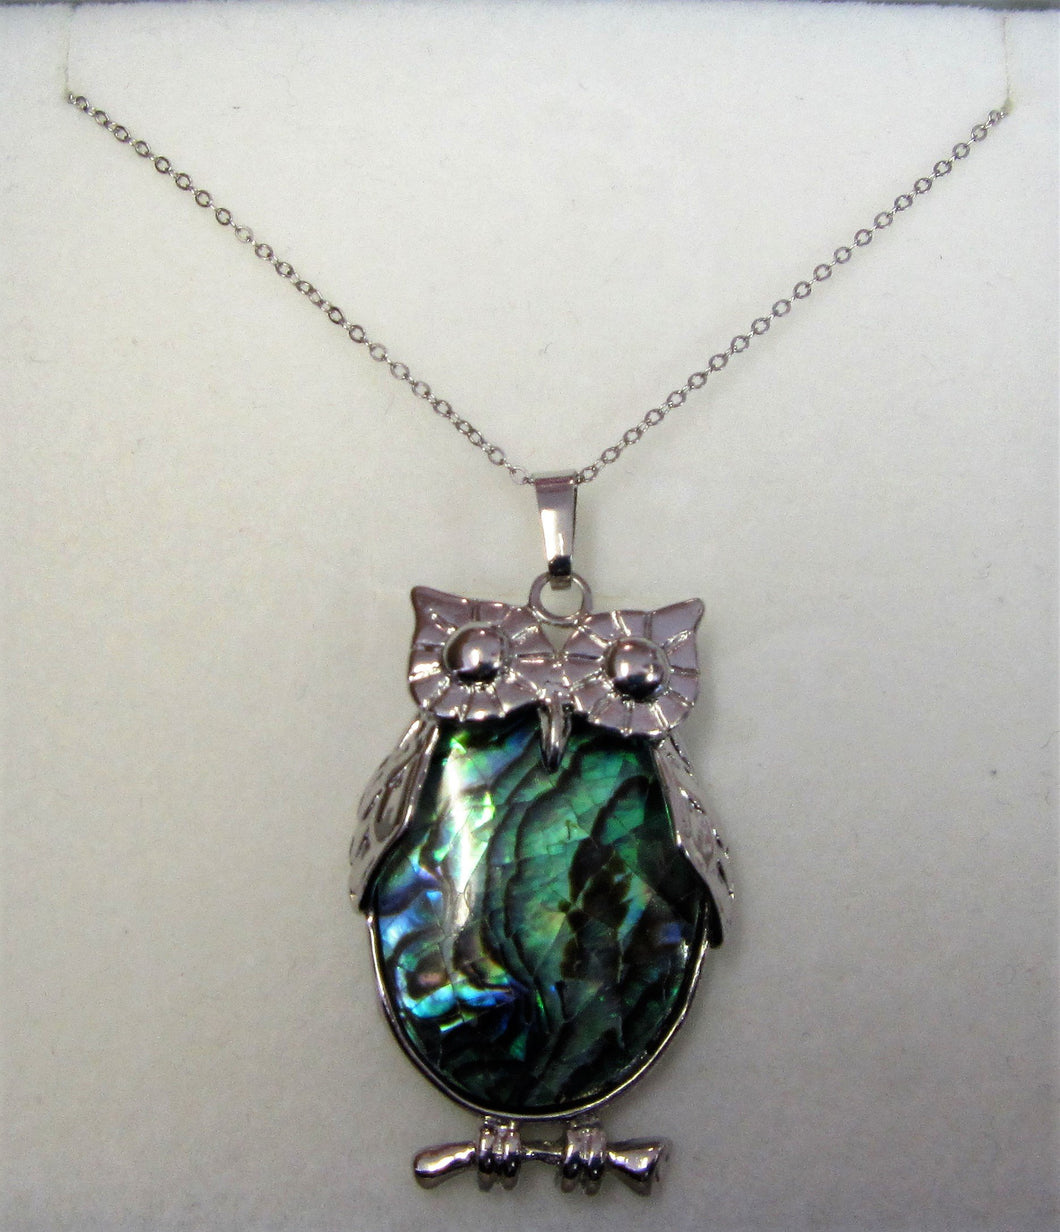 Beautiful handcrafted sterling silver necklace with abalone owl pendant